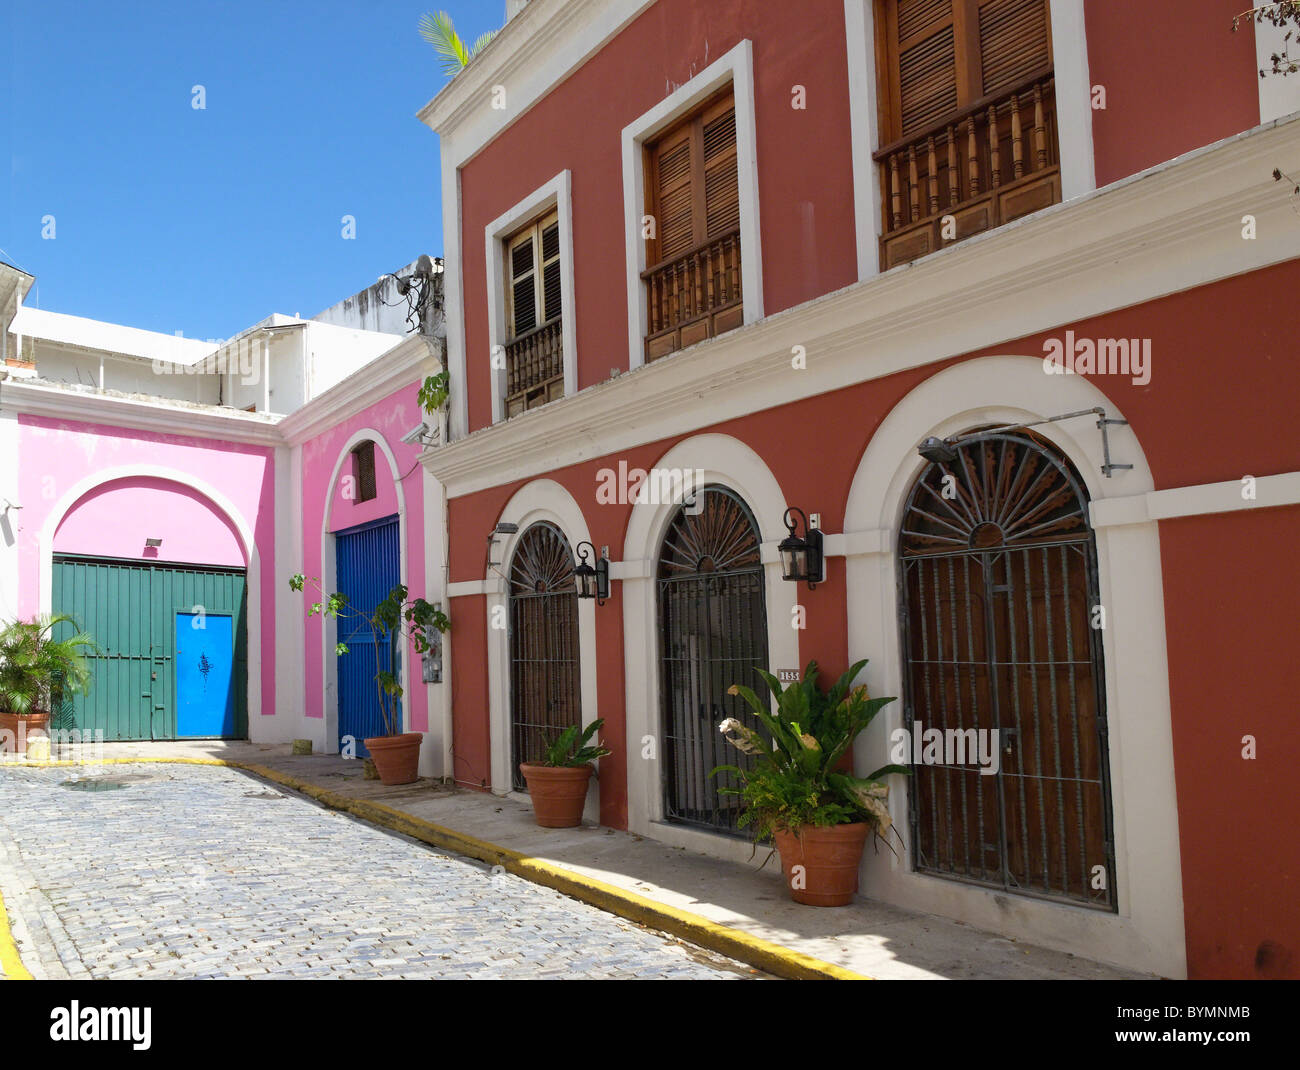 Rue du vieux San Juan à l'architecture coloniale, Puerto Rico Photo Stock